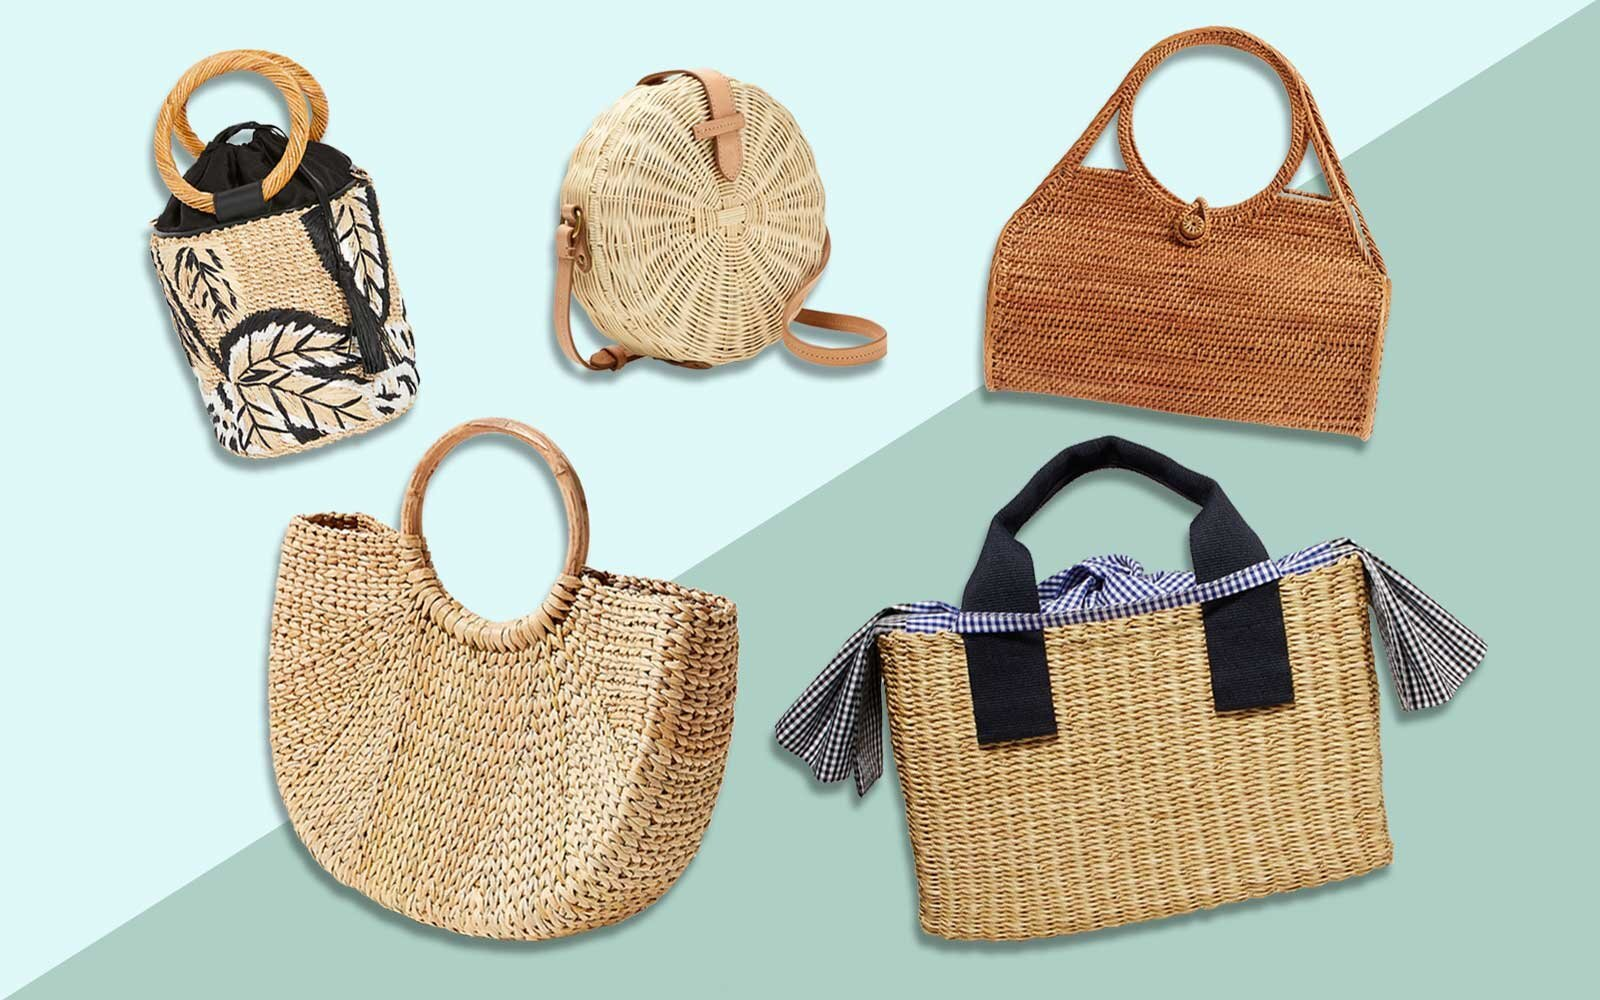 3c9762bcf94cd 17 Cute Straw Bags - Crossbody, Circle, and More | Travel + Leisure